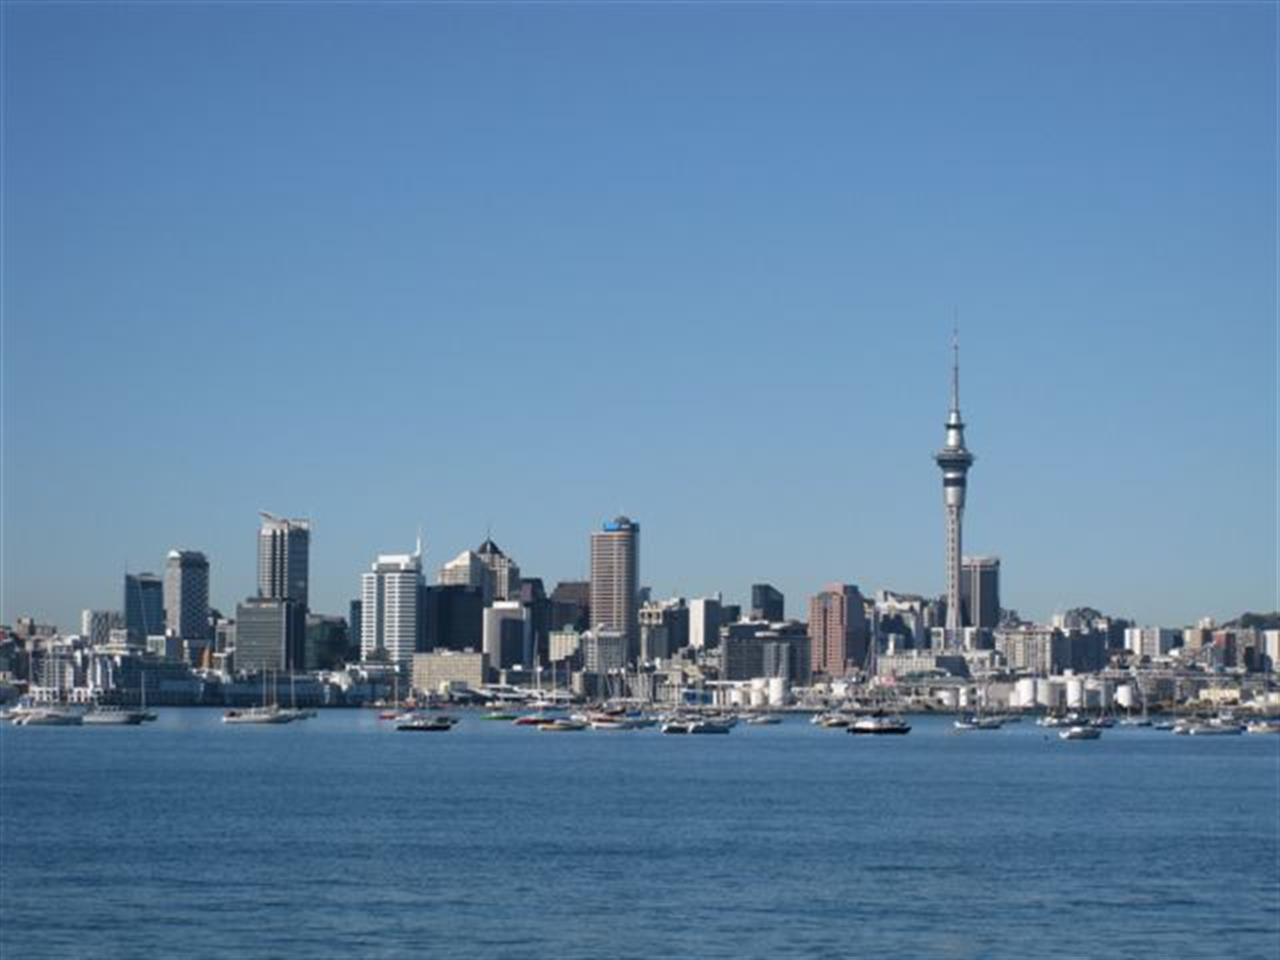 Auckland City Auckland, New Zealand #LeadingRElocal